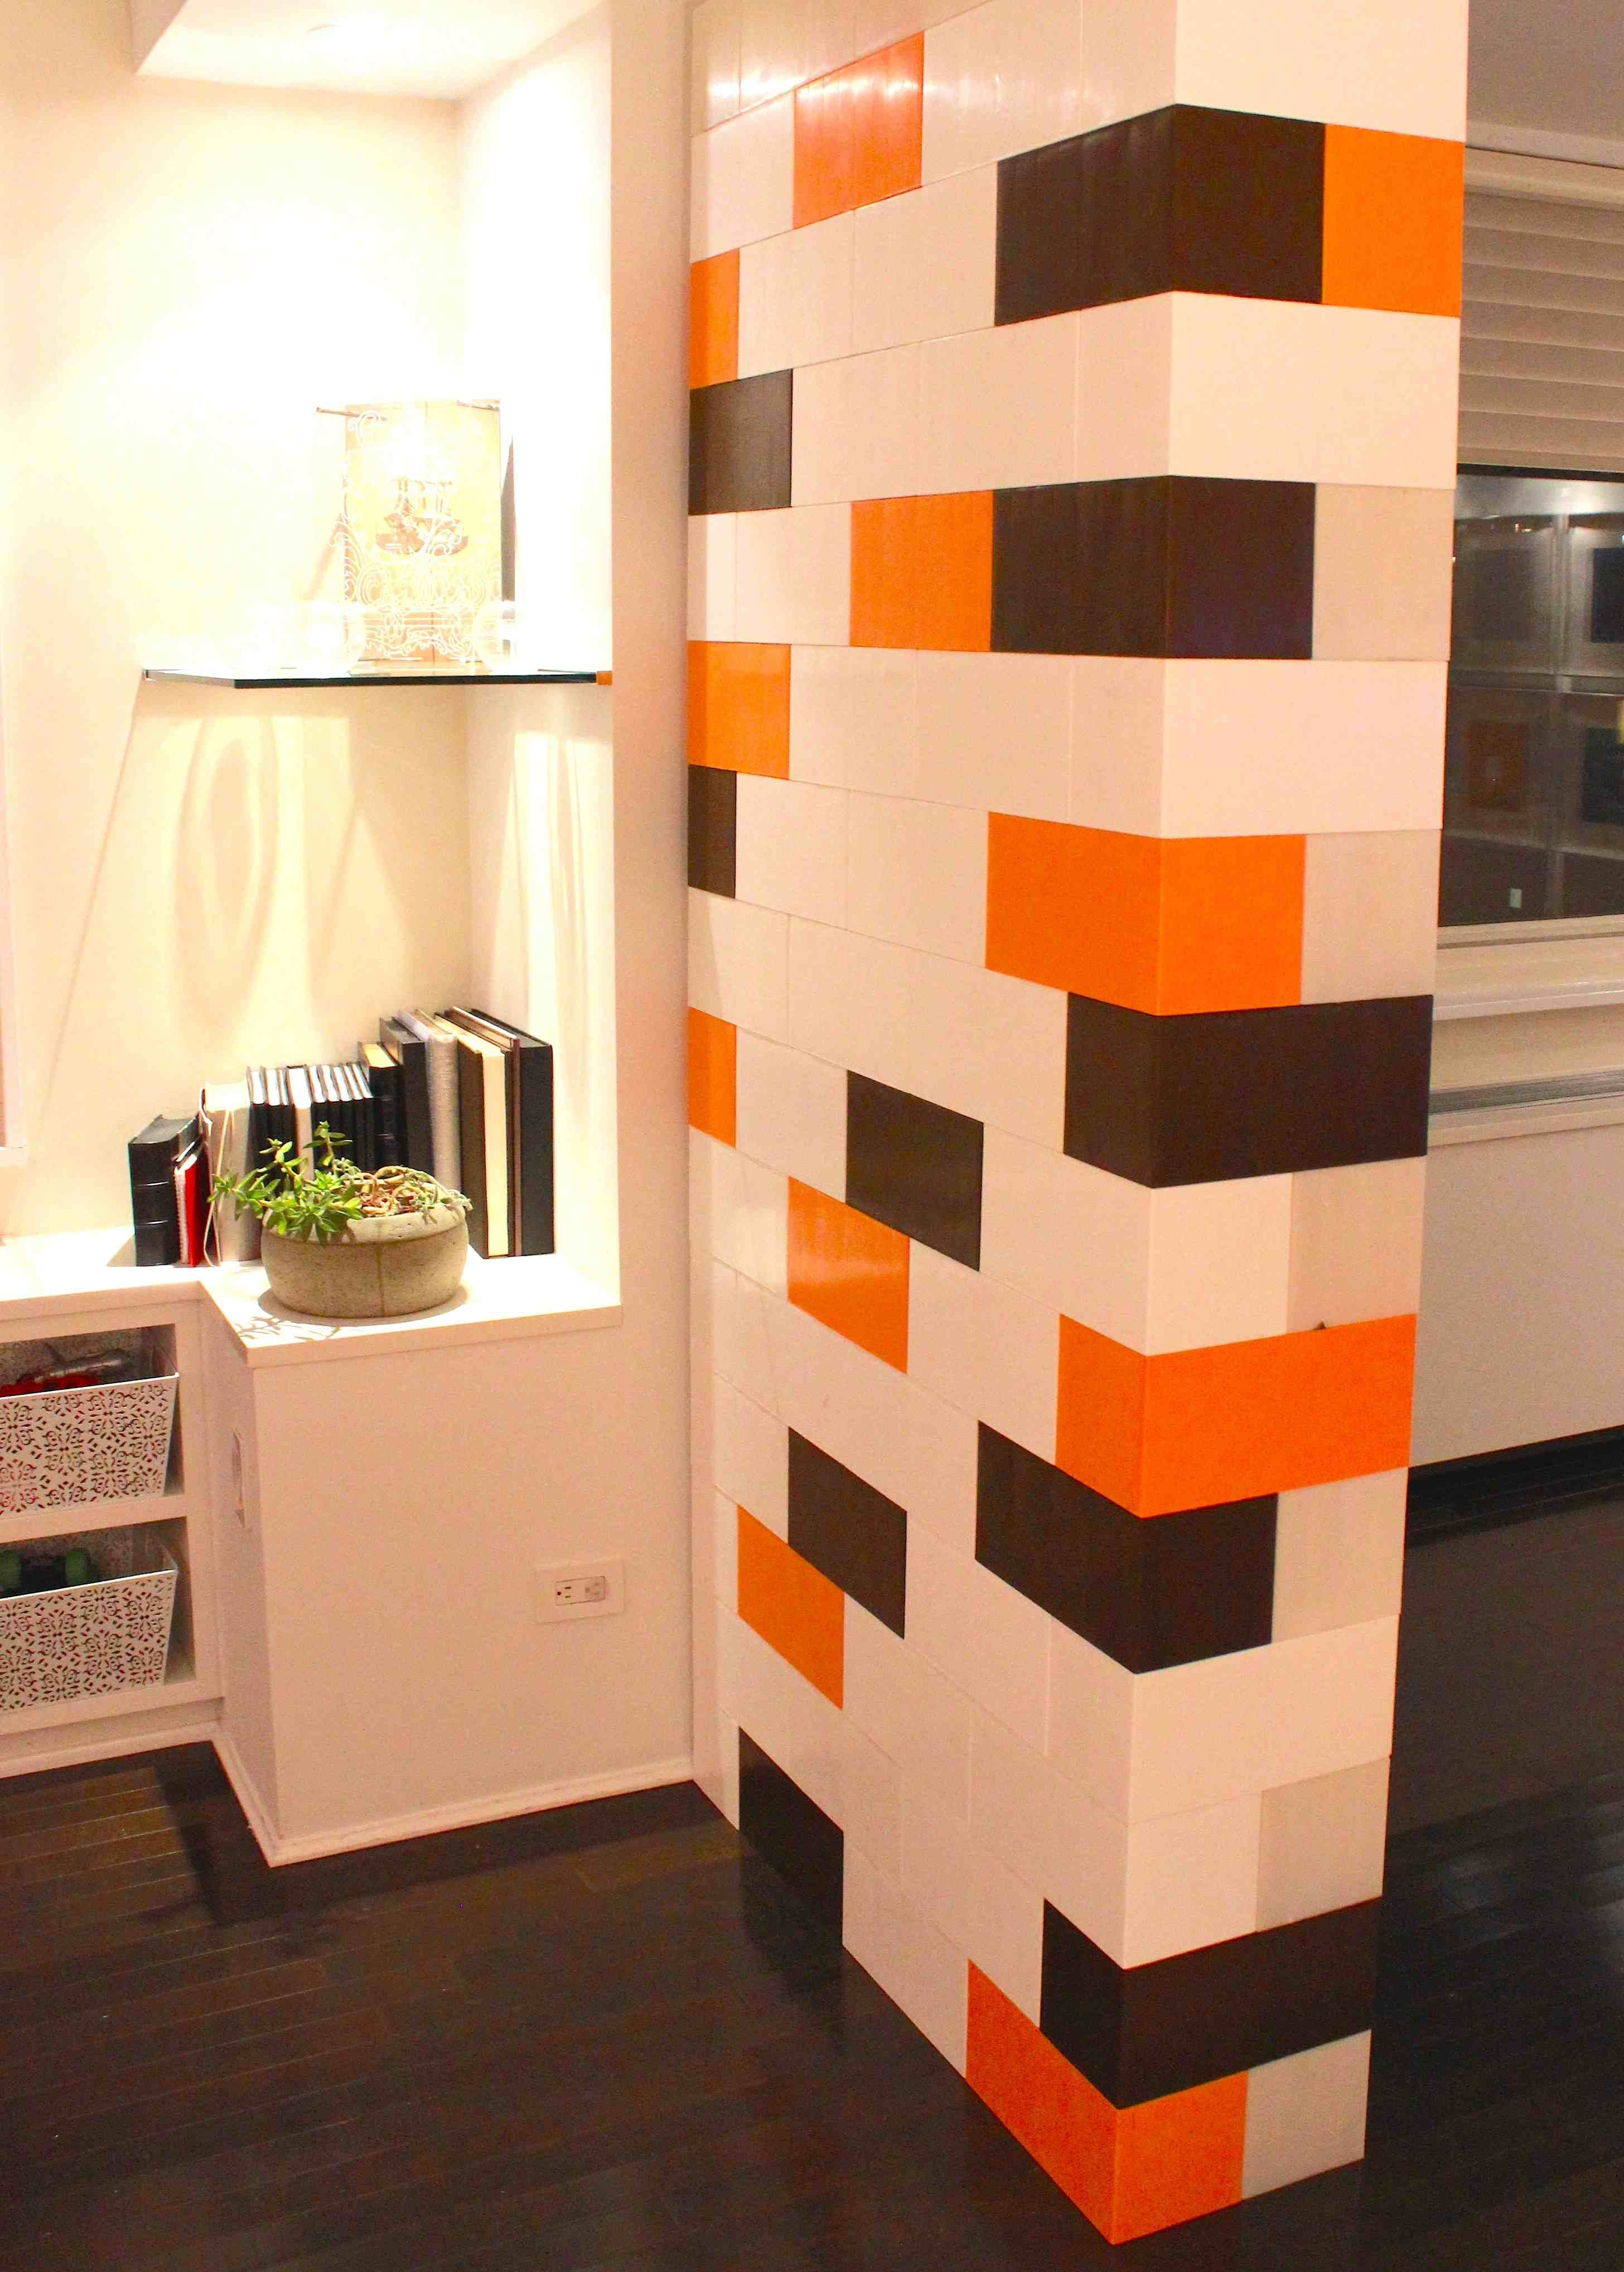 Modulare Wandsysteme Colorful Portable Wall For Dividing A Room With A Little